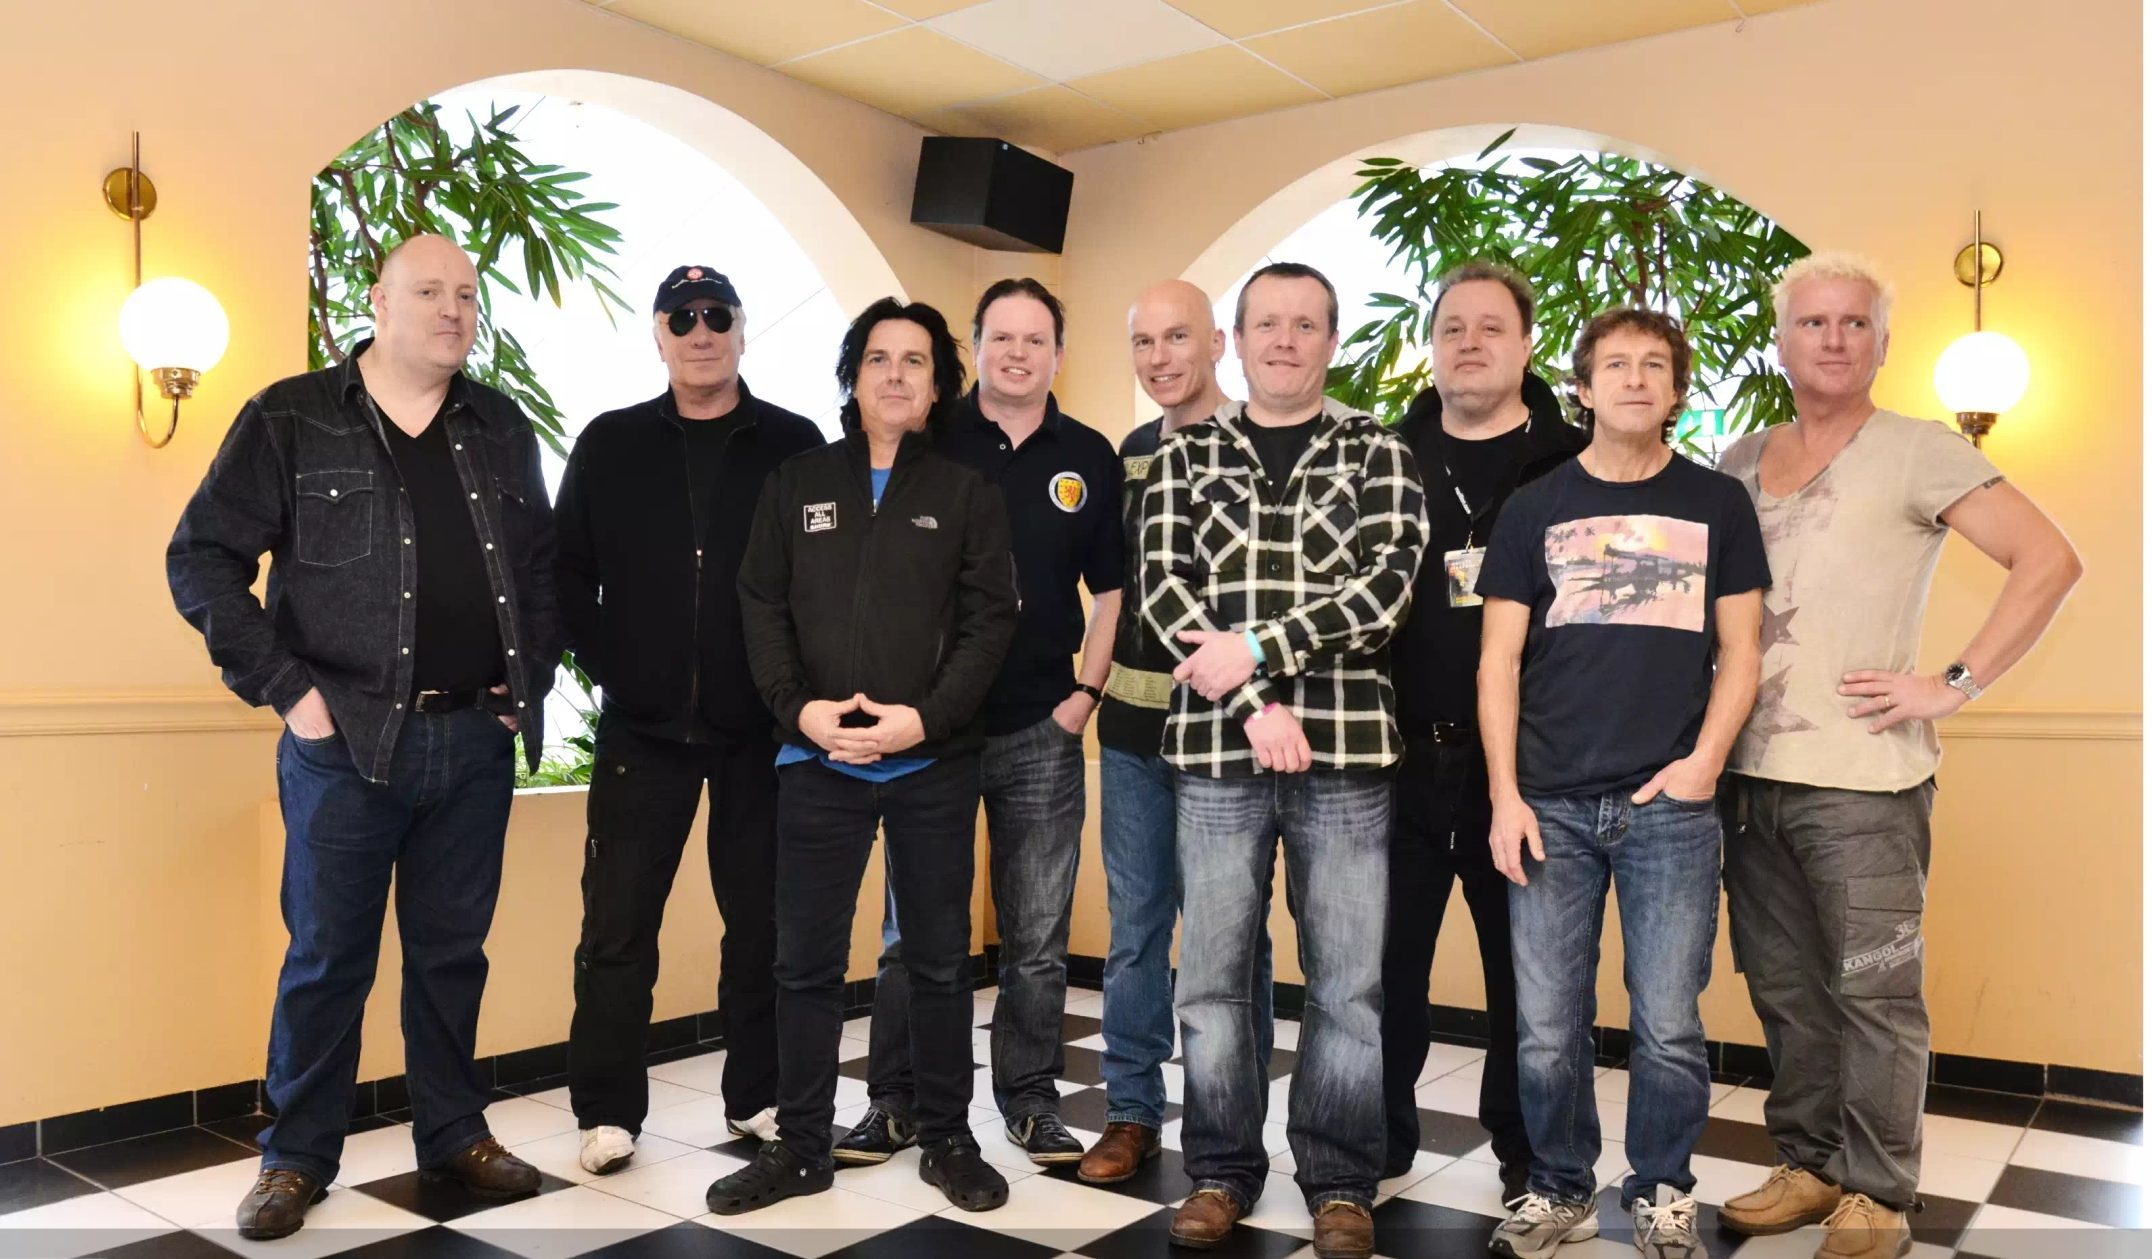 Kevin O'Neil, left, and friends met members of Marillion three years ago.